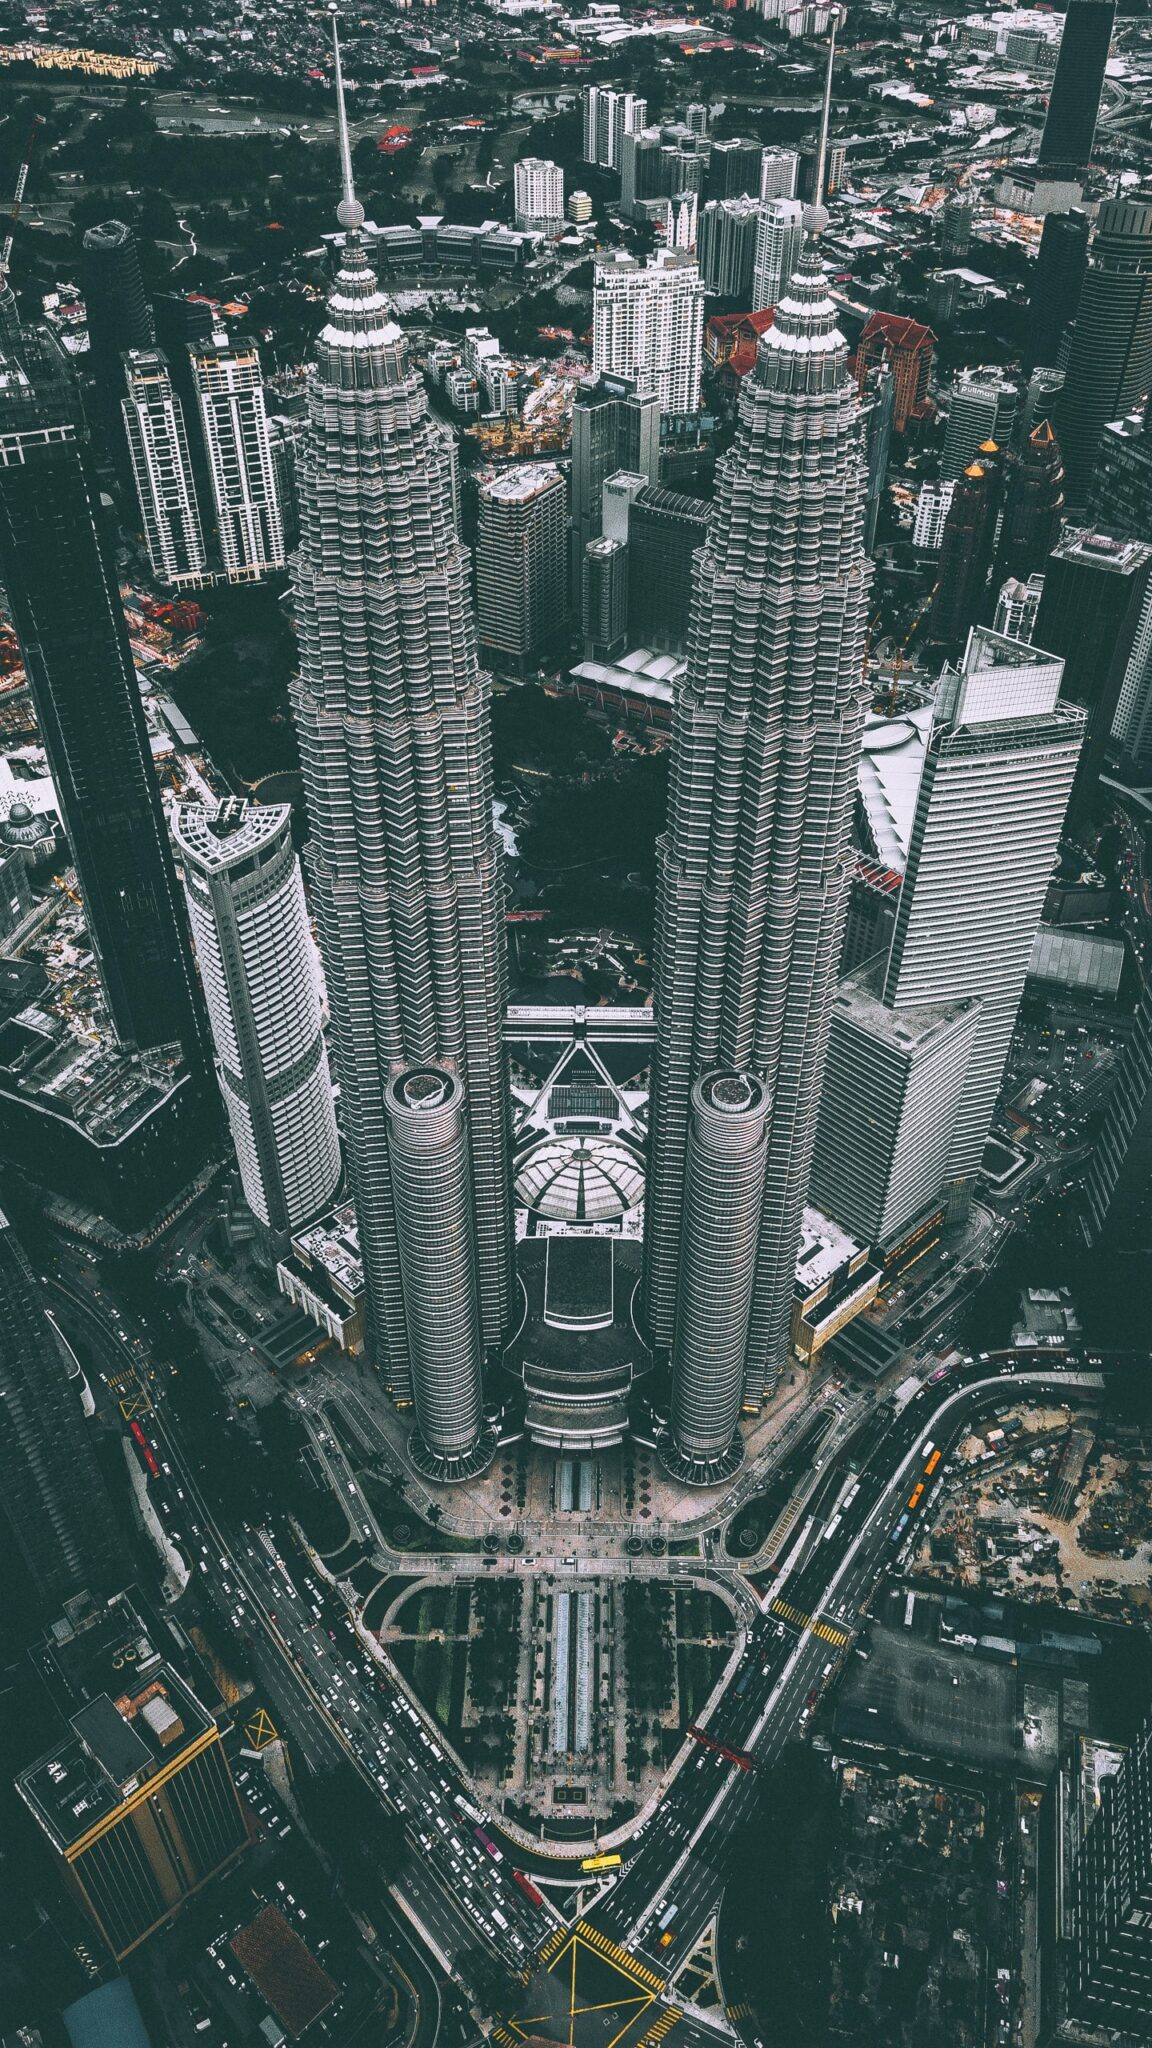 Buildings in Malaysia and urban area.